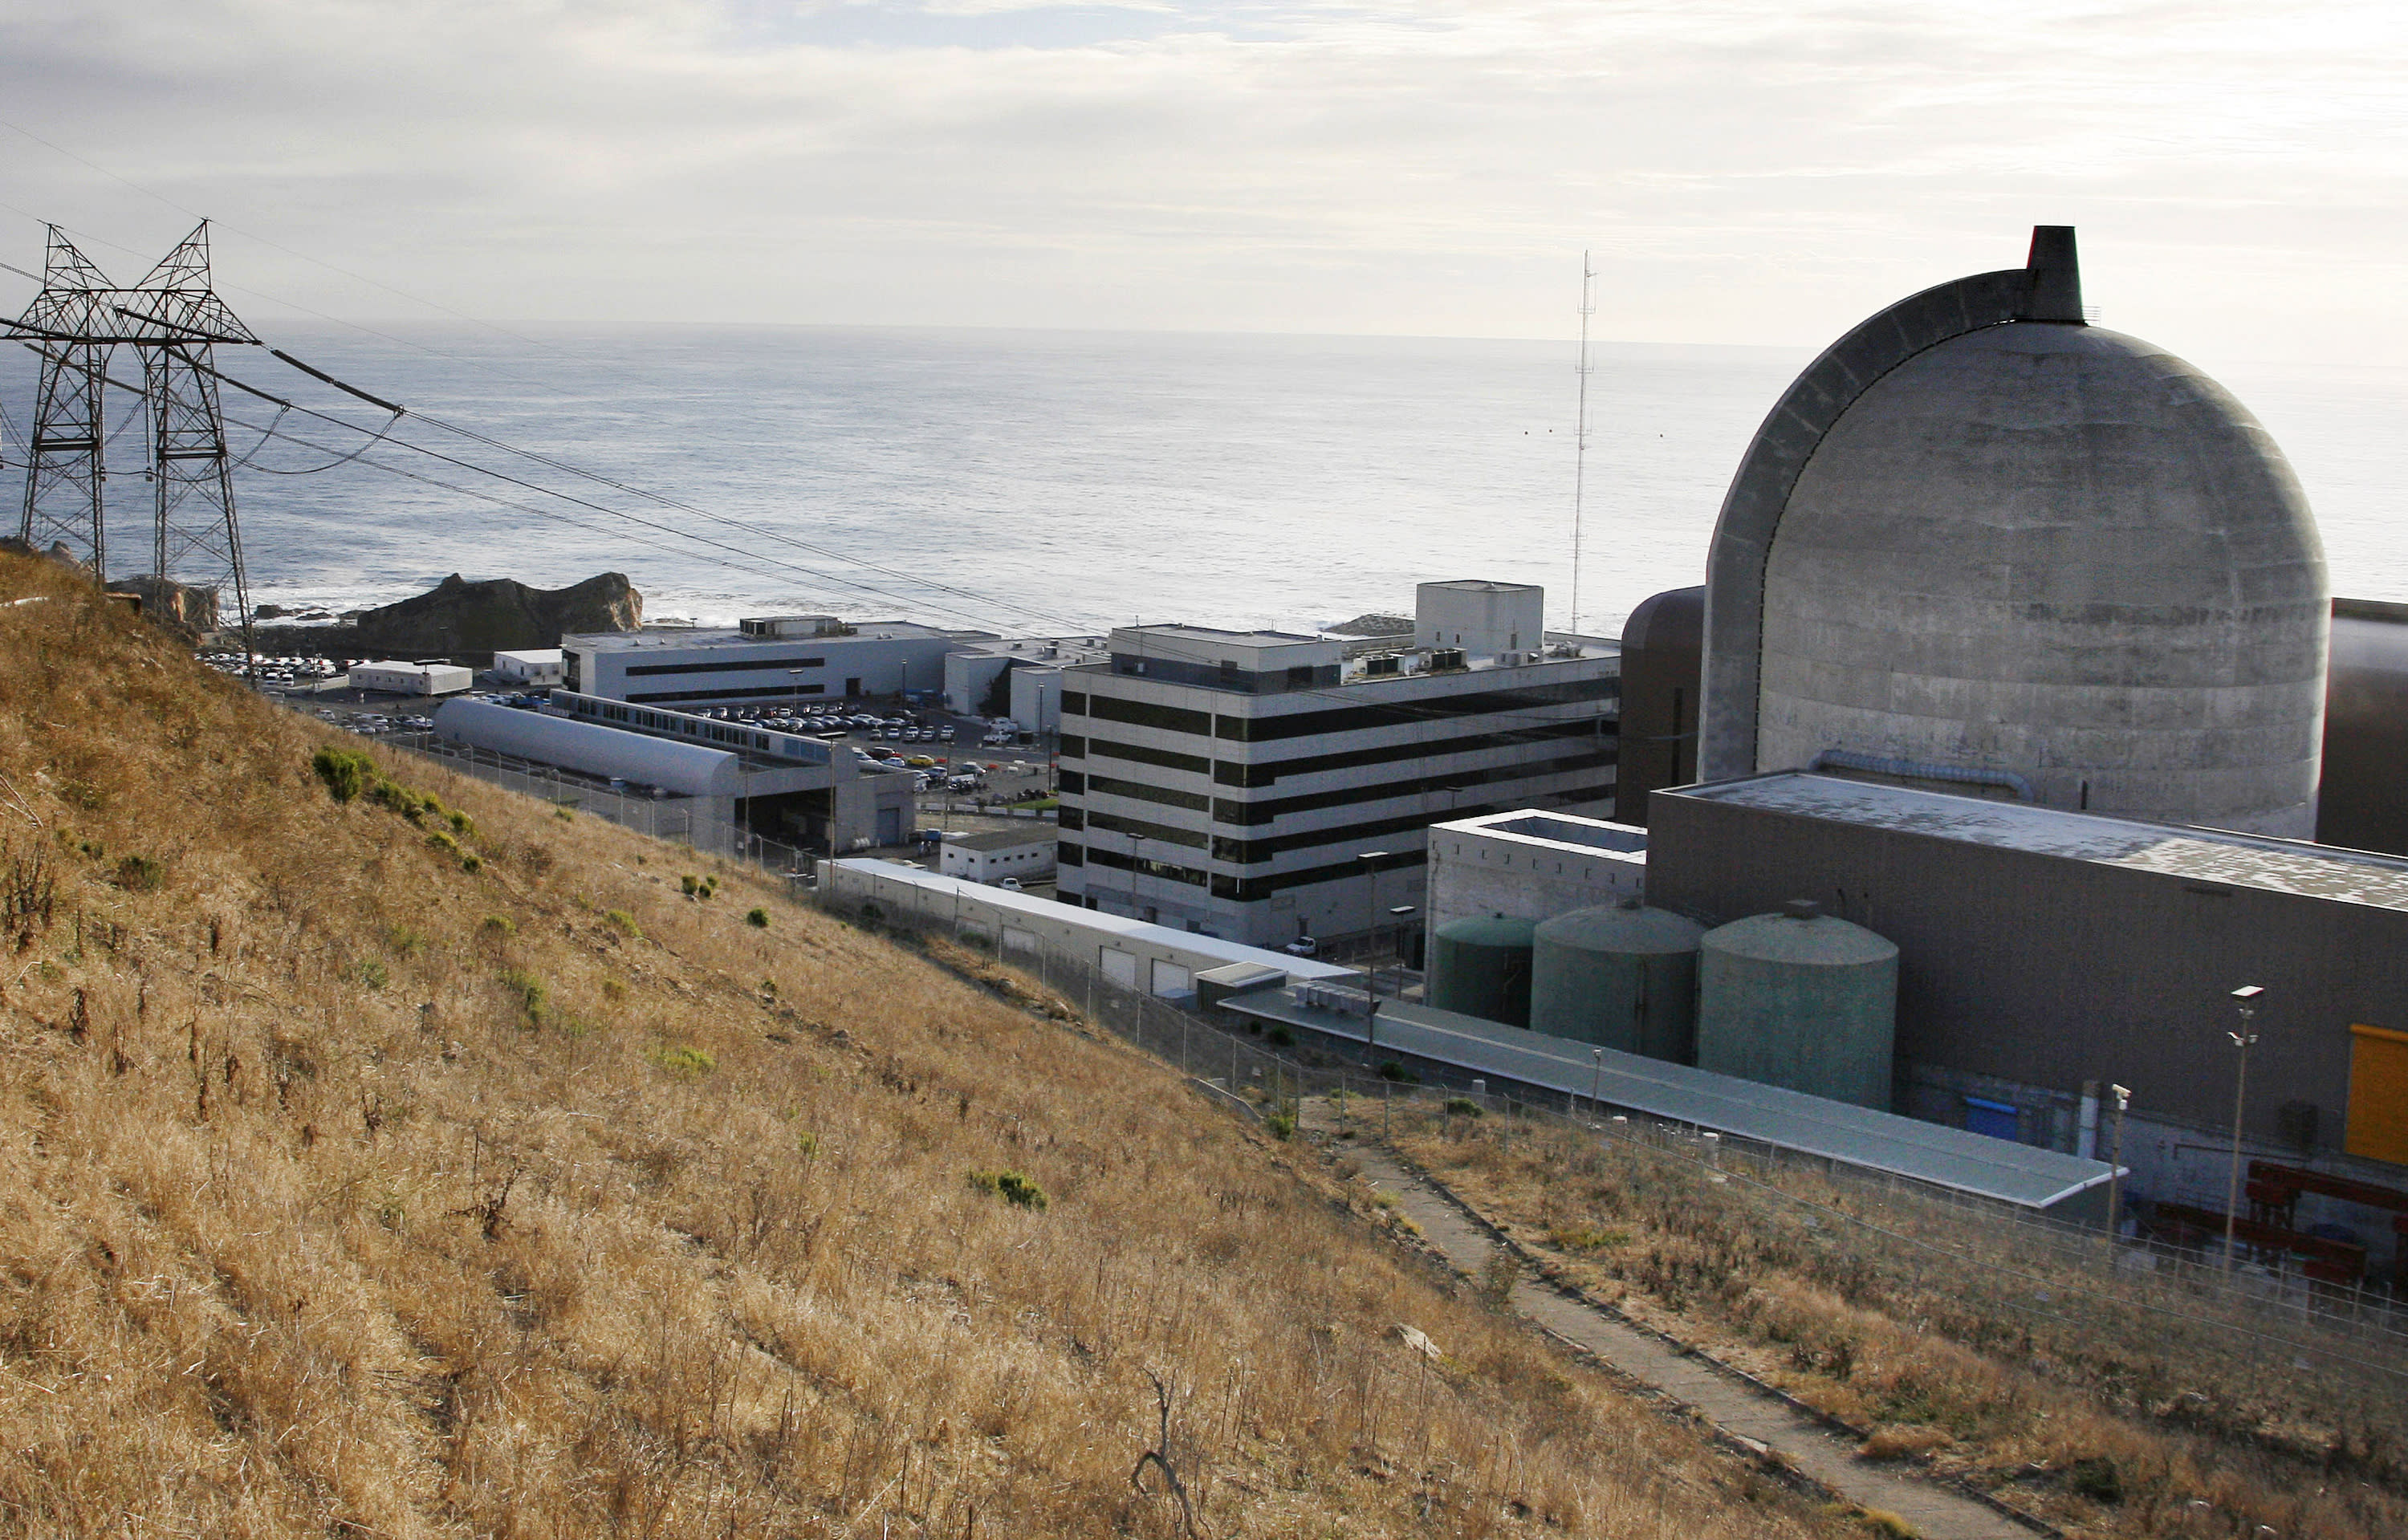 Nuclear crossroad: California reactors face uncertain future